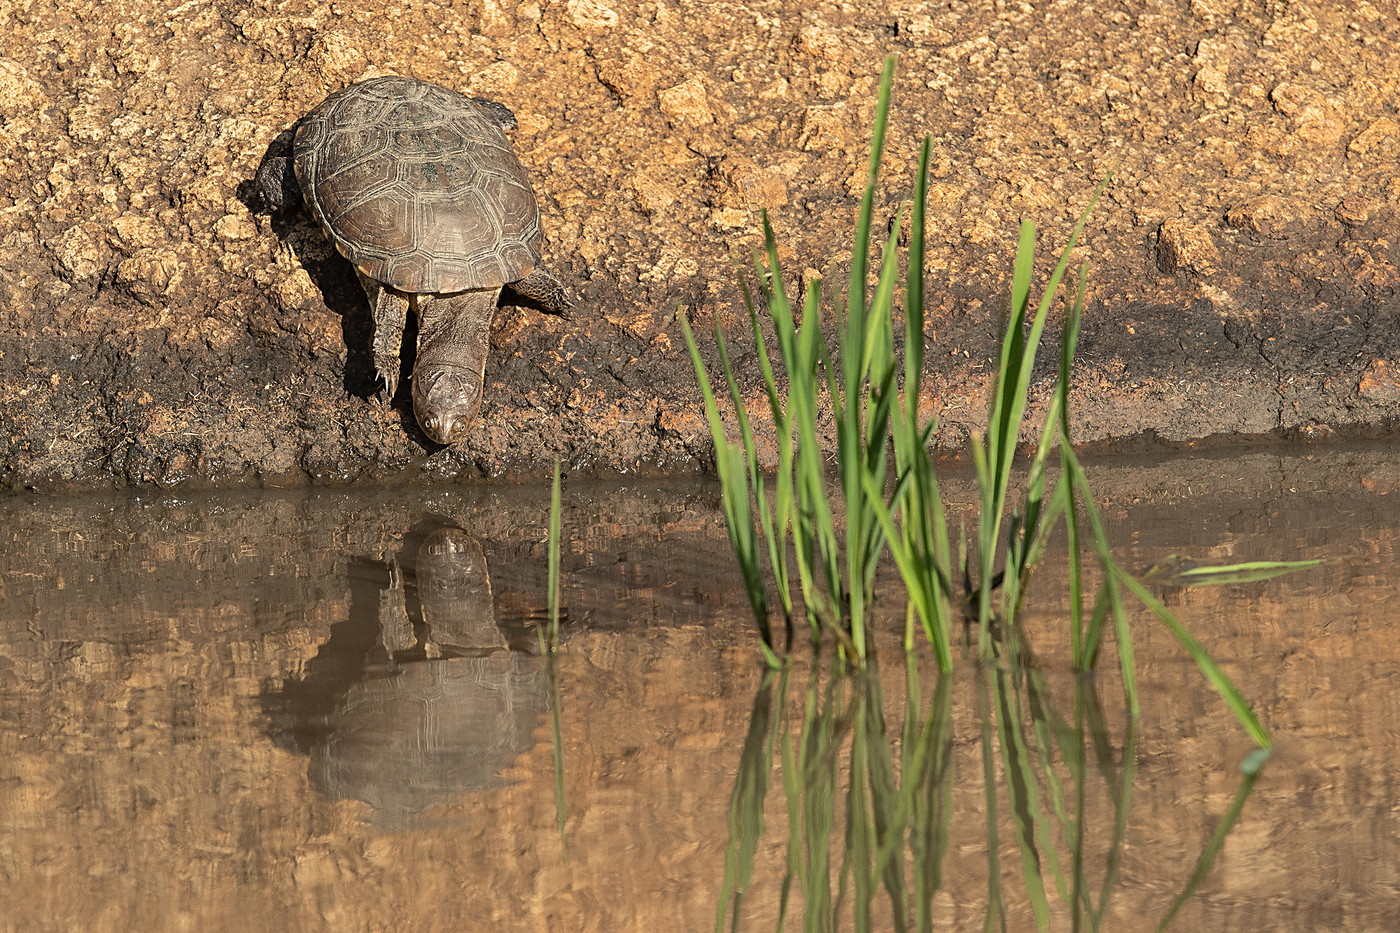 Helmeted Terrapin in the Serengeti NP, Tanzania